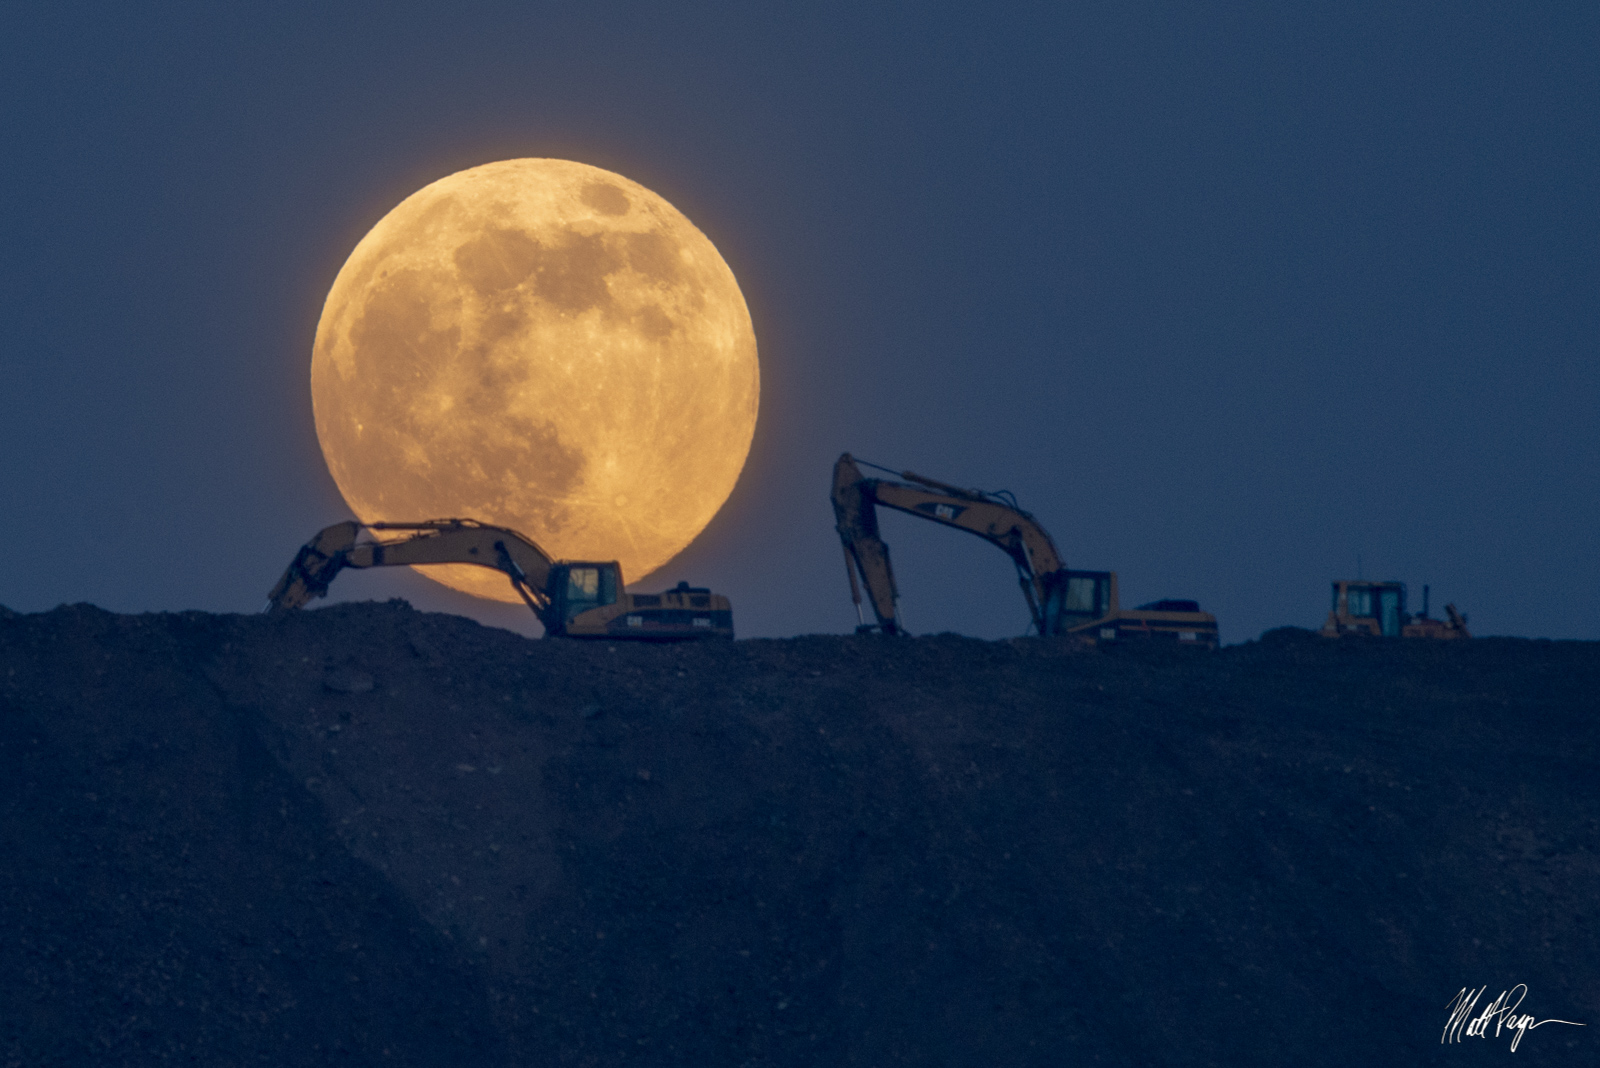 Catepillar machinery, Colorado, Cripple Creek, Full, Moon, Supermoon, Working, photo